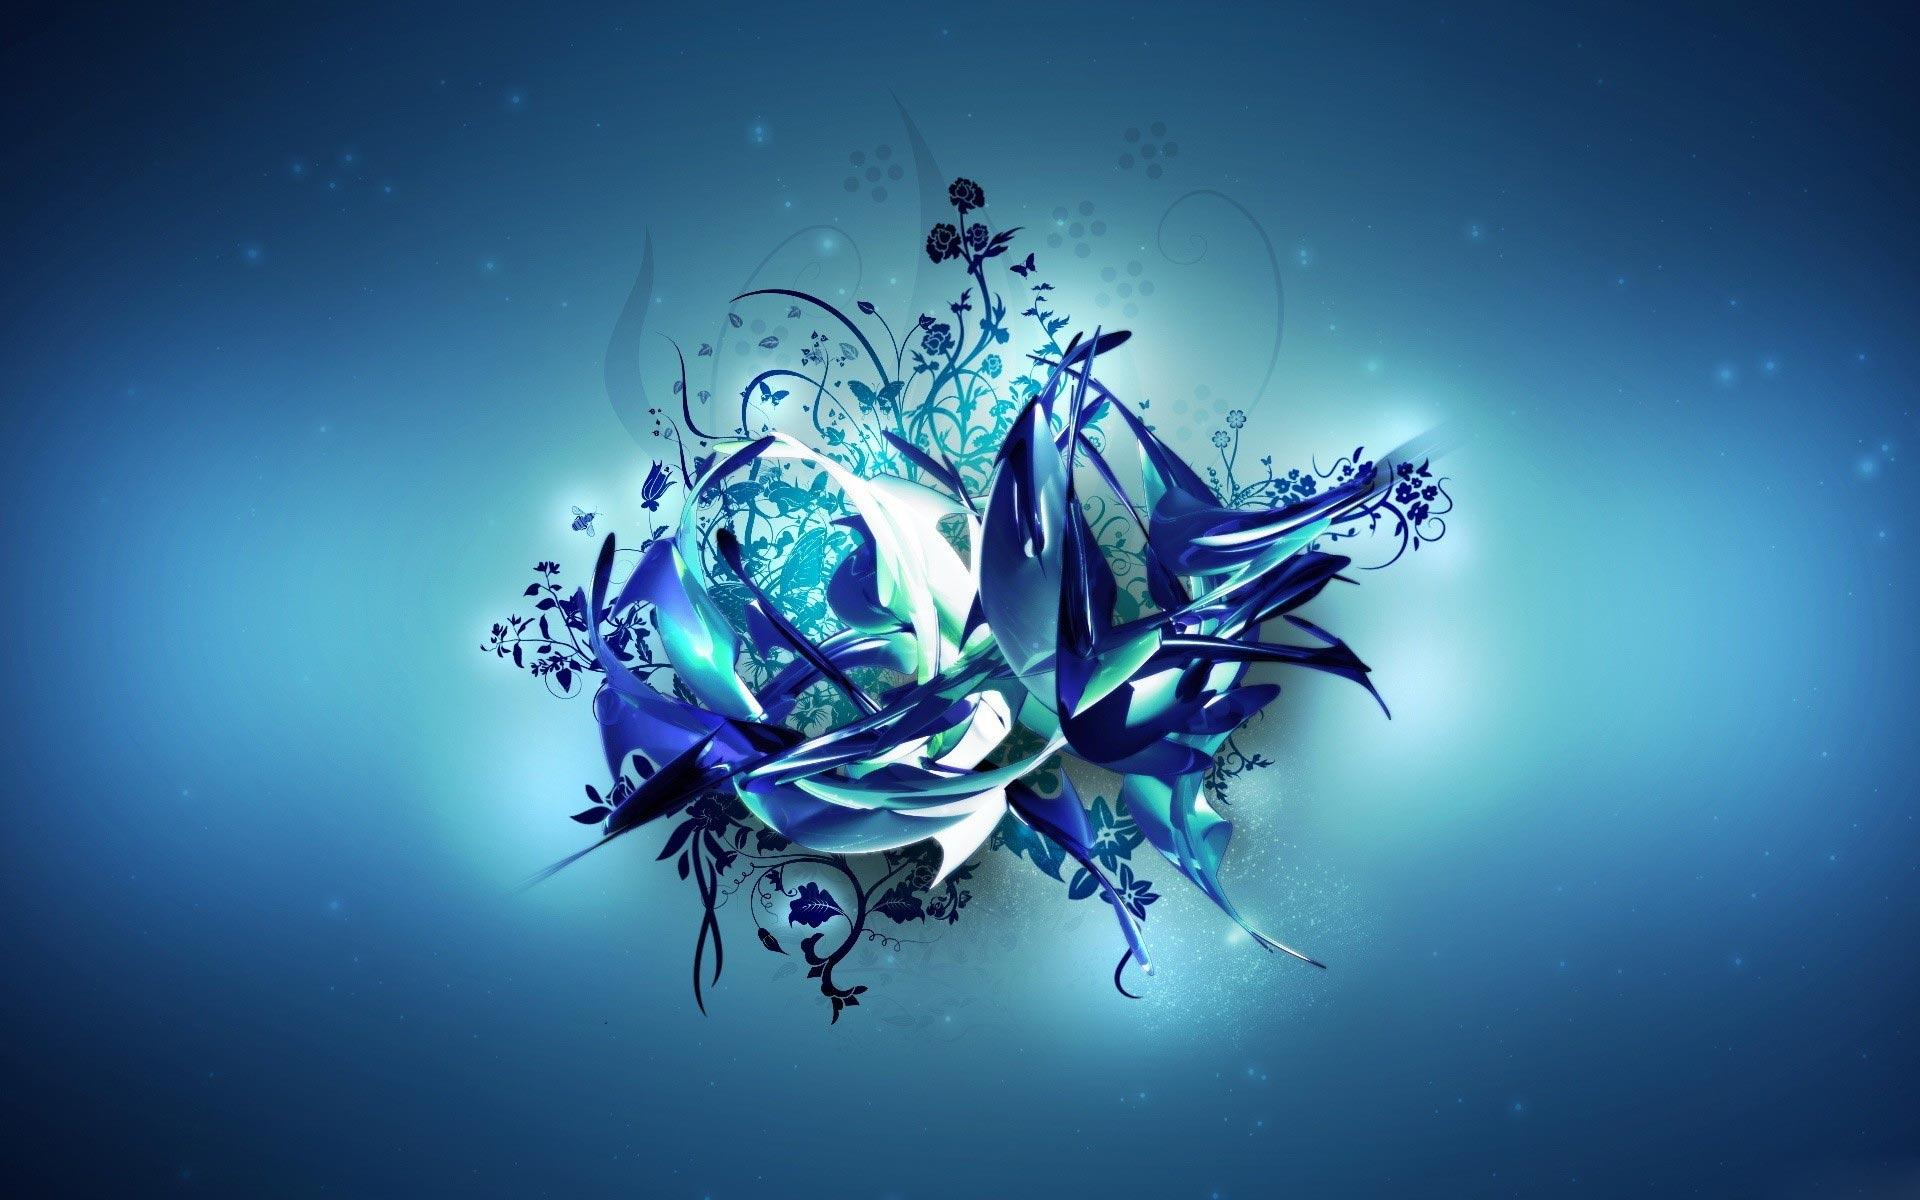 3d Blue Abstract Wallpaper 8544 Hd Wallpapers in 3D   Imagescicom 1920x1200